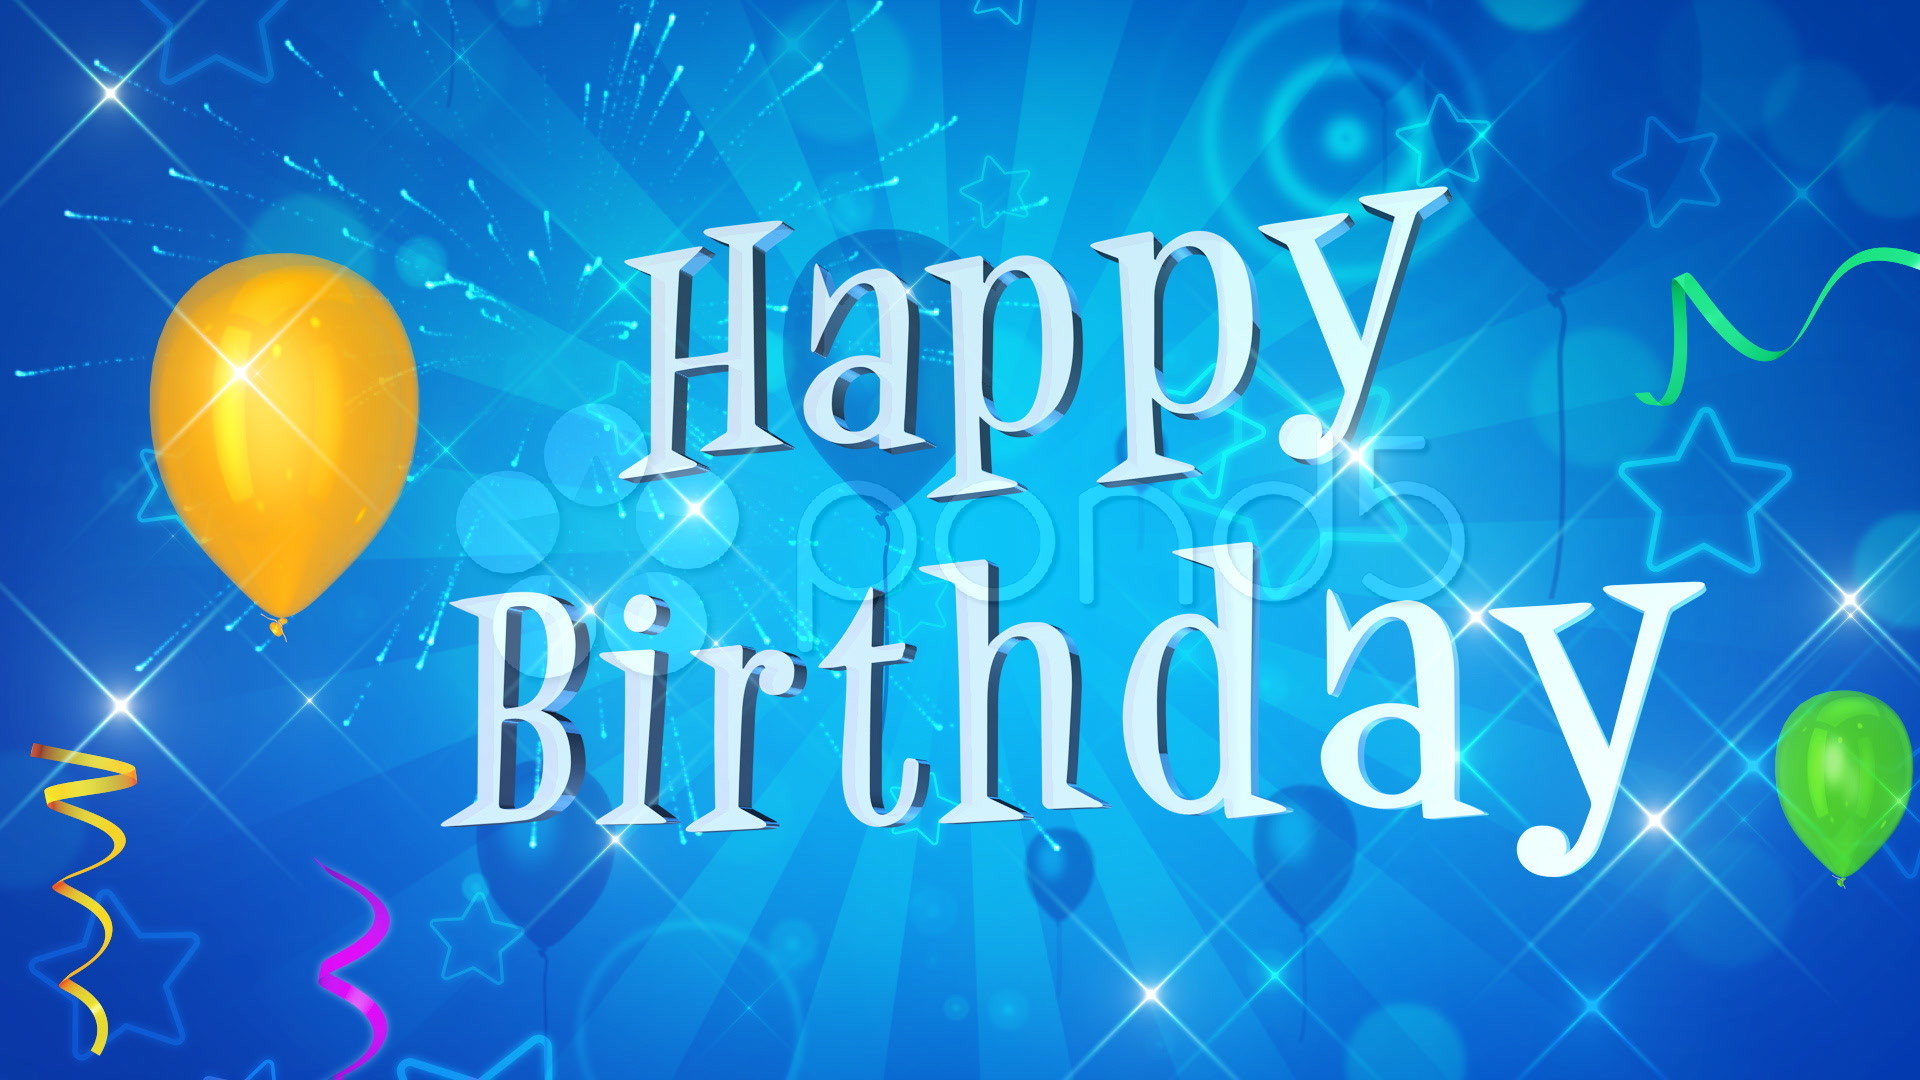 Birthday Background Pictures 31 Images